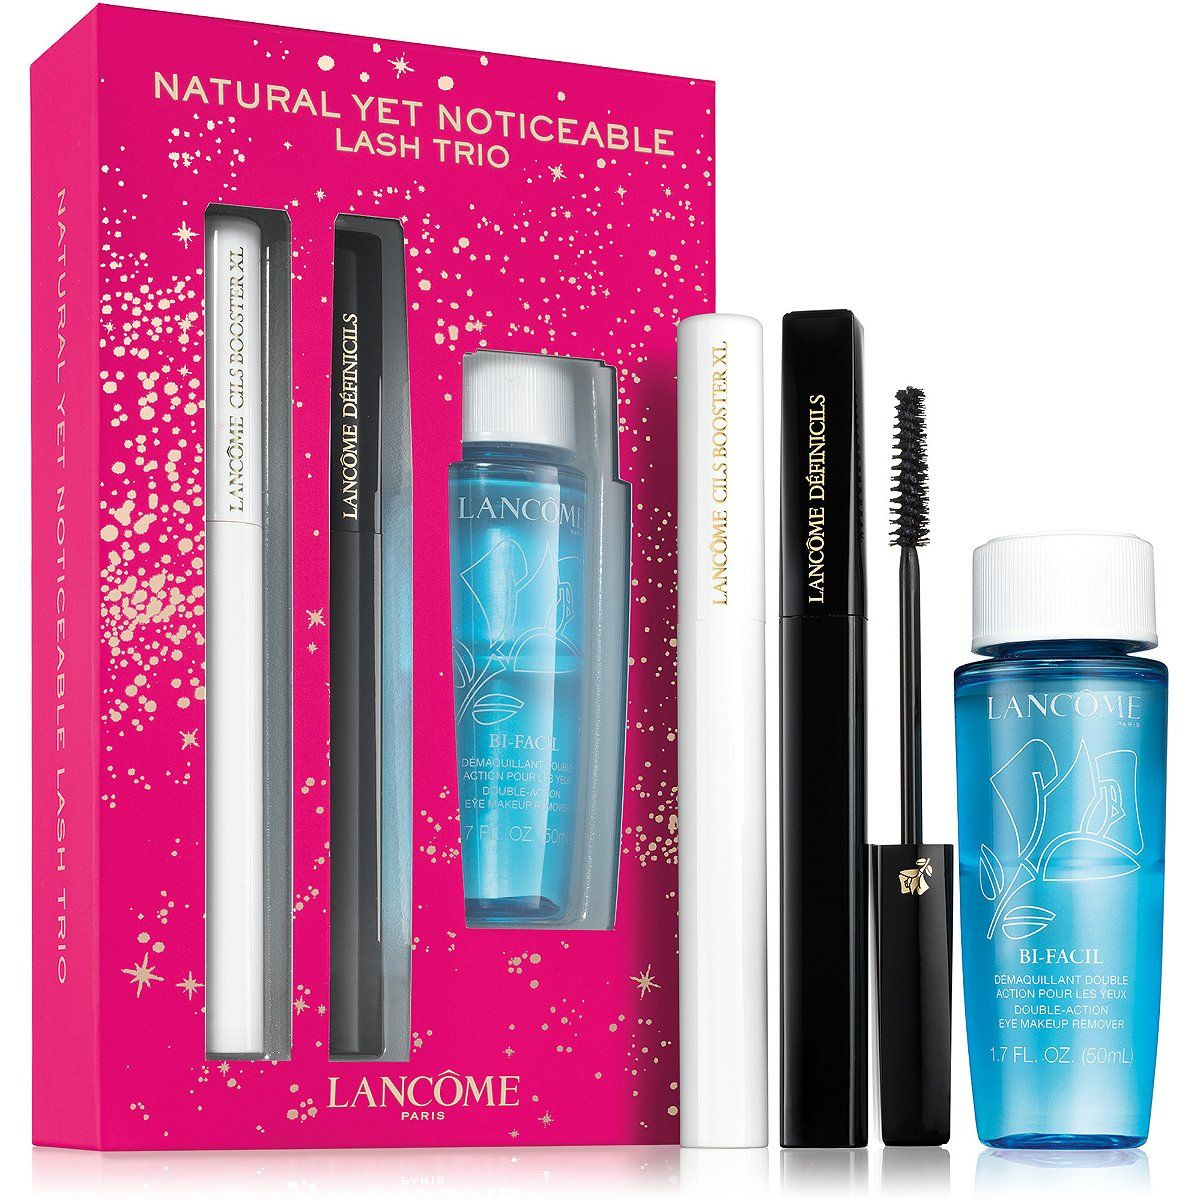 Lancôme Définicils Mascara Natural Yet Noticeable Lash